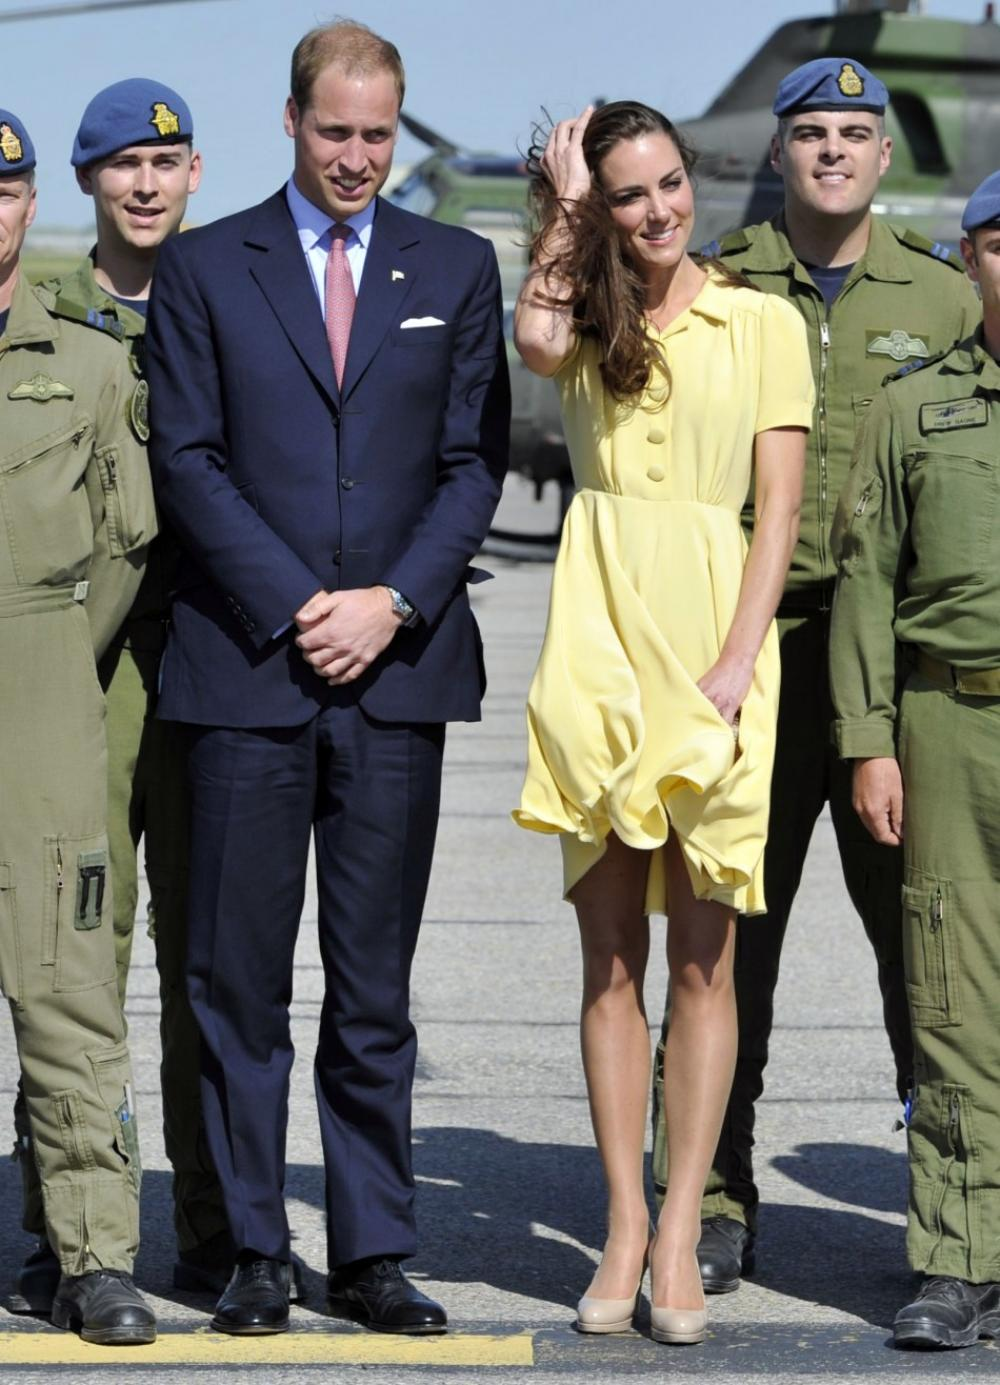 126607-britains-prince-william-and-his-wife-catherine-duchess-of-cambridge-po.jpg